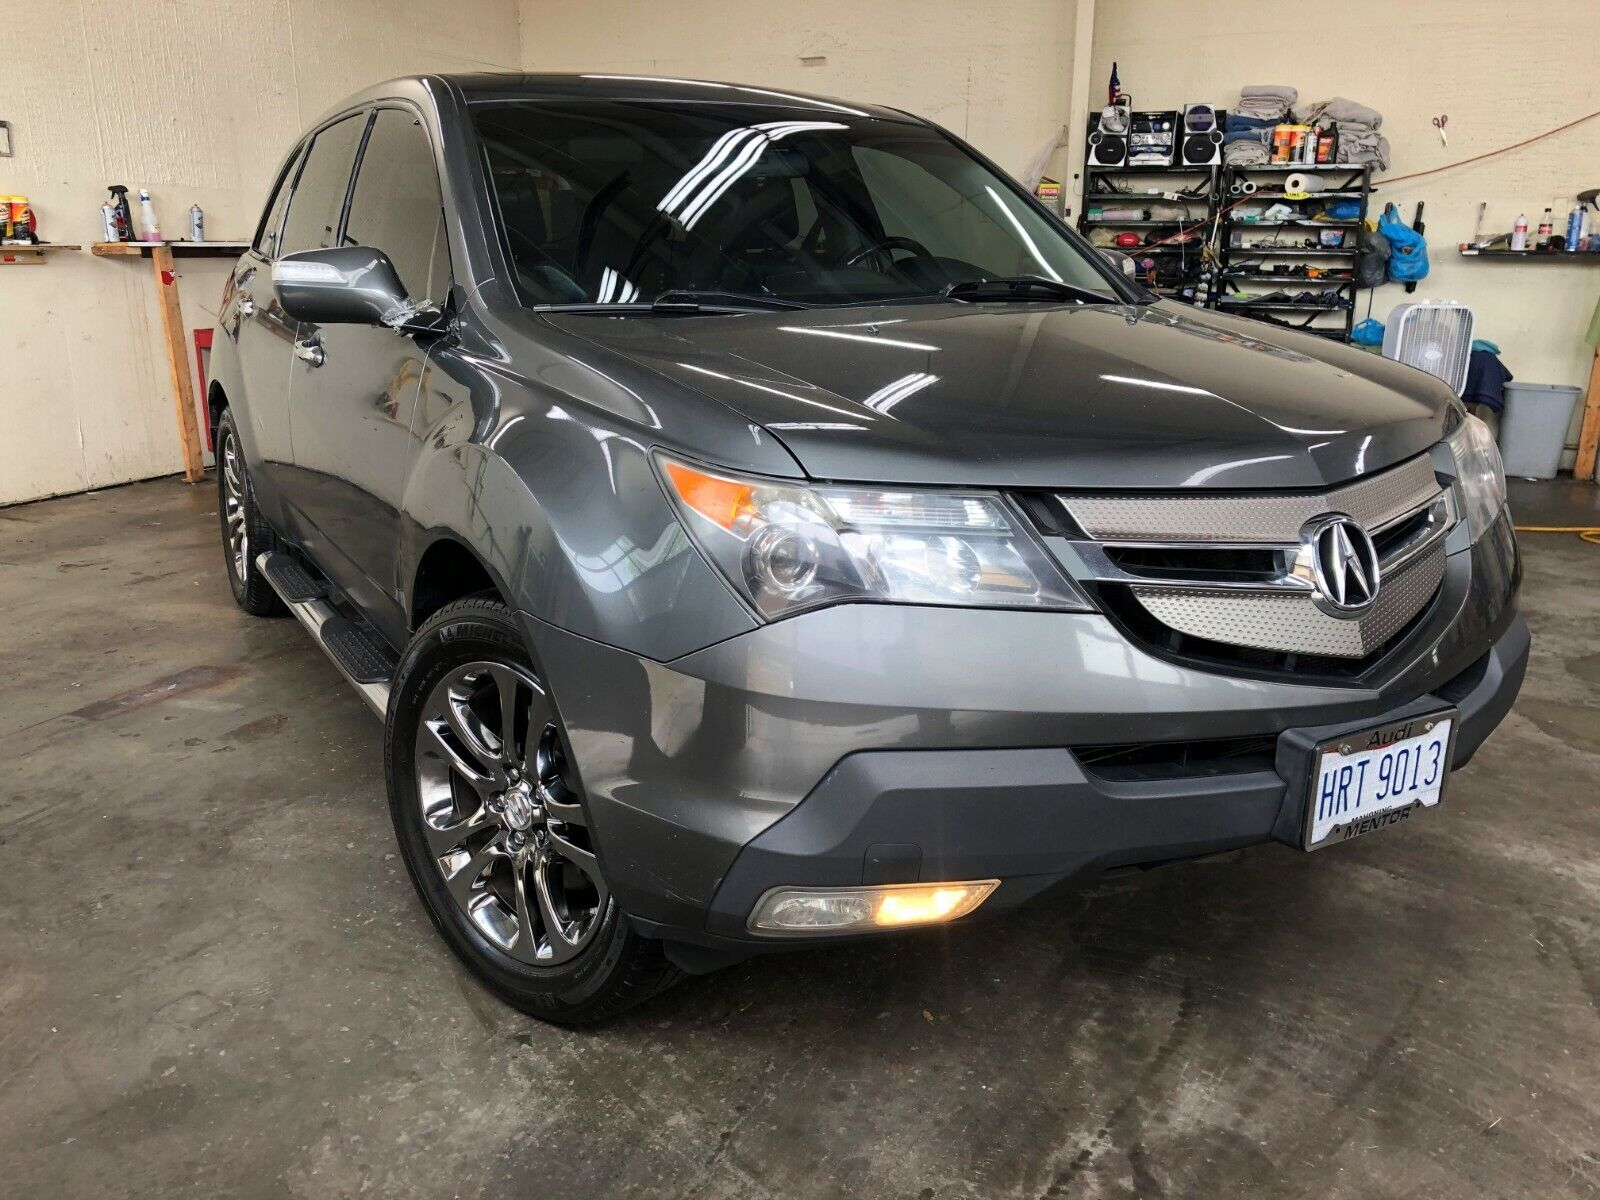 2007 Acura MDX Sport Tech/RES 07 Acura MDX Sport Tech RES DVD Nav A-Spec Htd Leather Drives Beautifully, Cheap